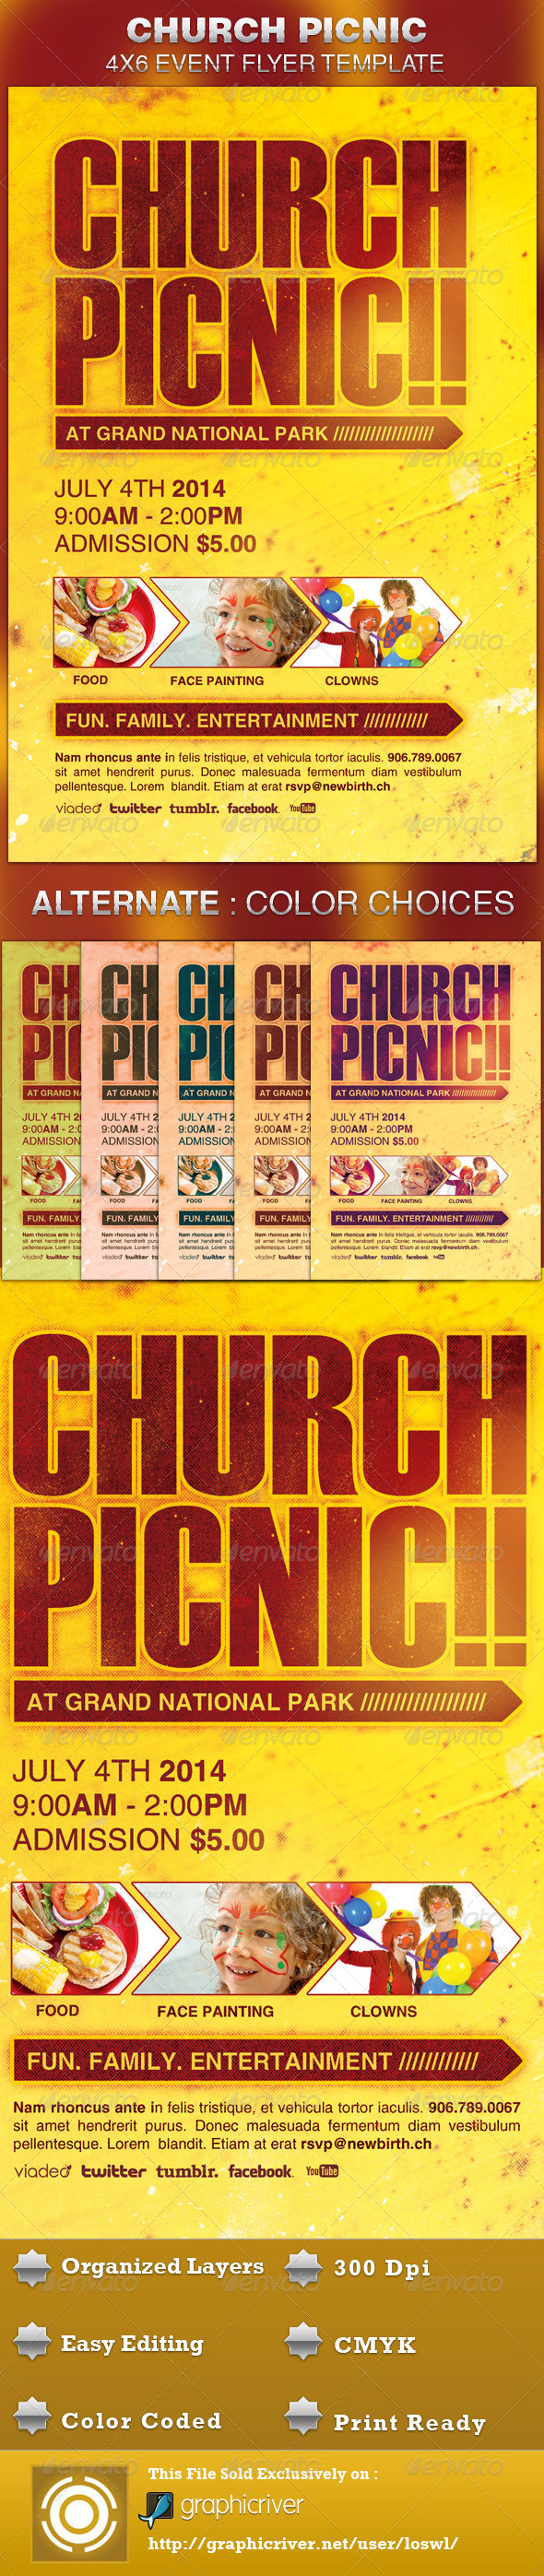 Church picnic flyer template by loswl graphicriver church picnic flyer template saigontimesfo